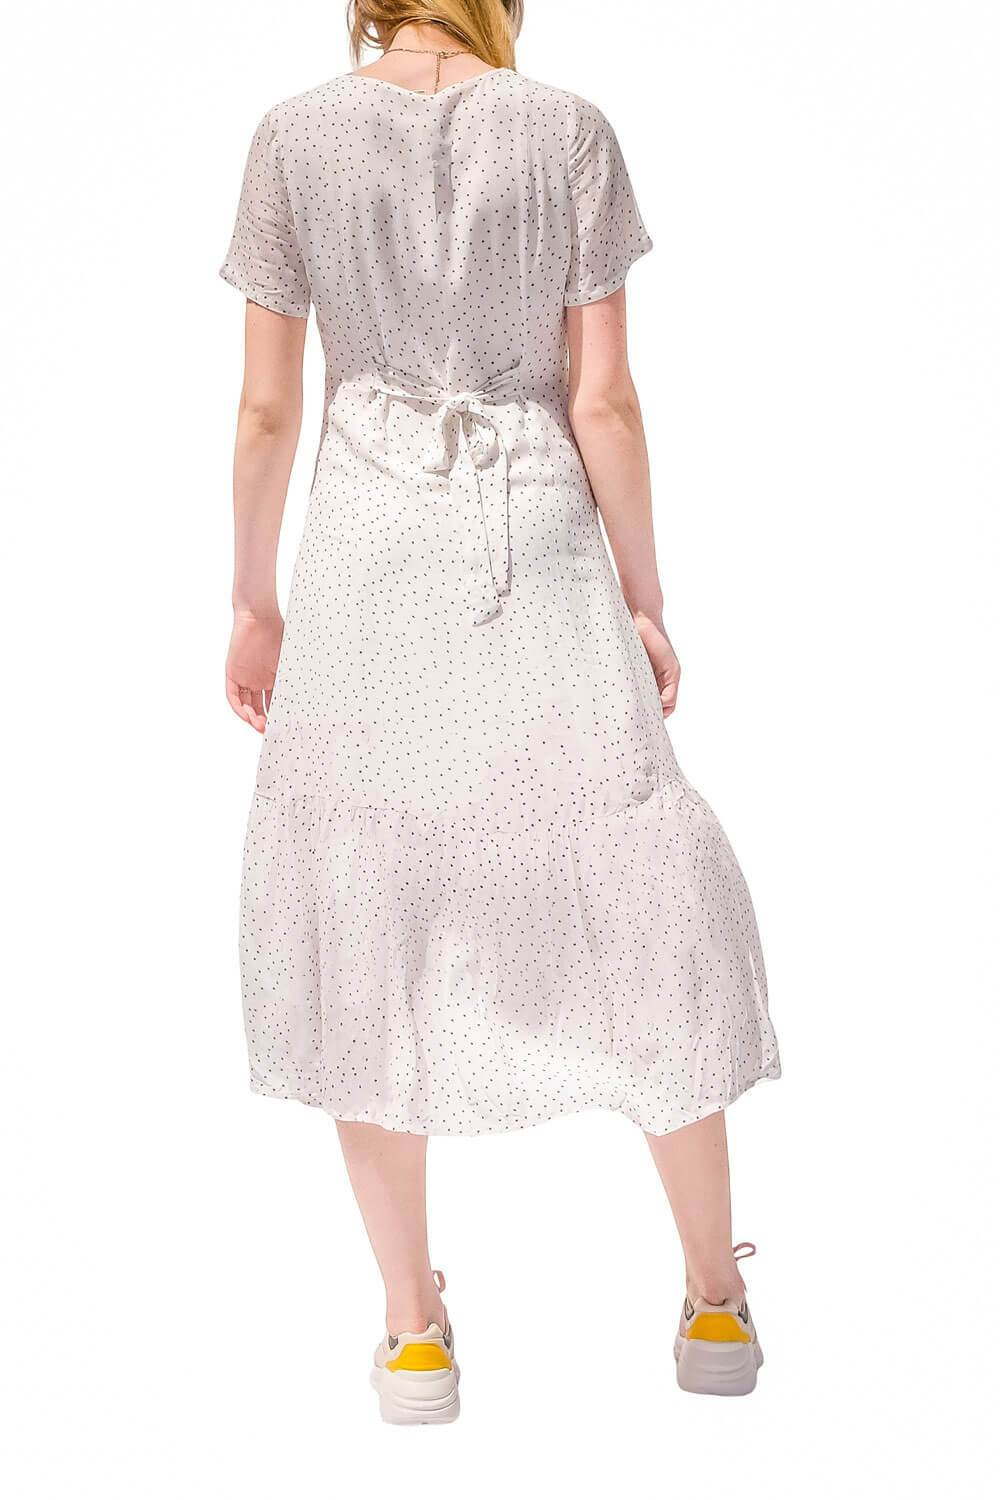 Willow Polka Dot Dress White back -MILK MONEY